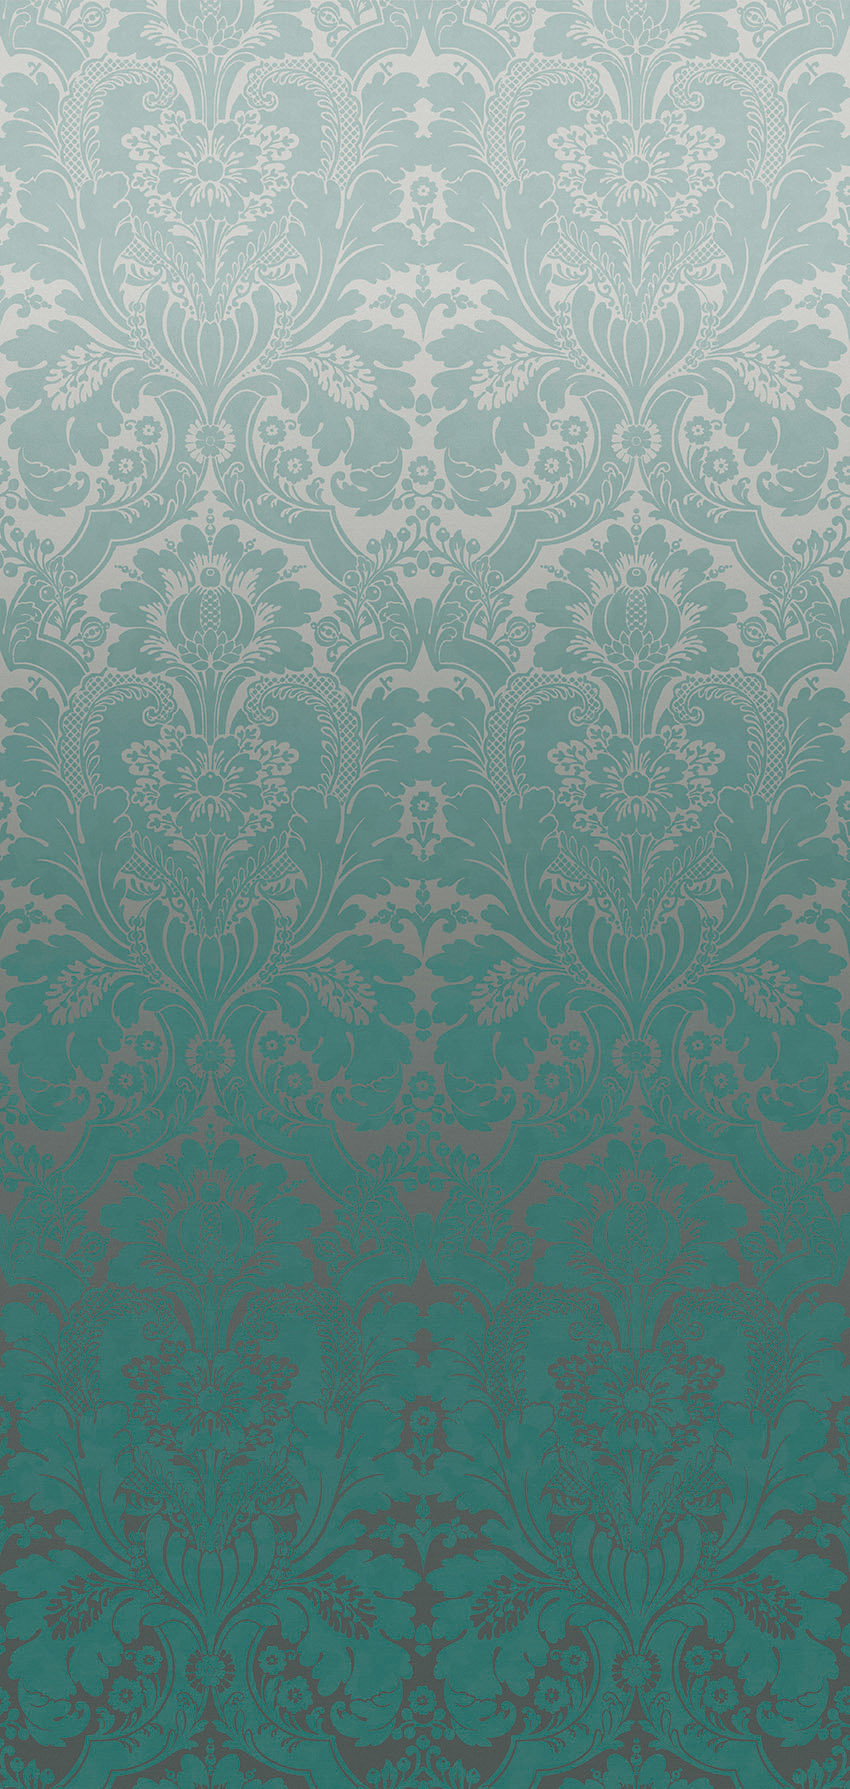 Papier peint St James's Park Teal Fade - Collection London Wallpapers V de Little Greene